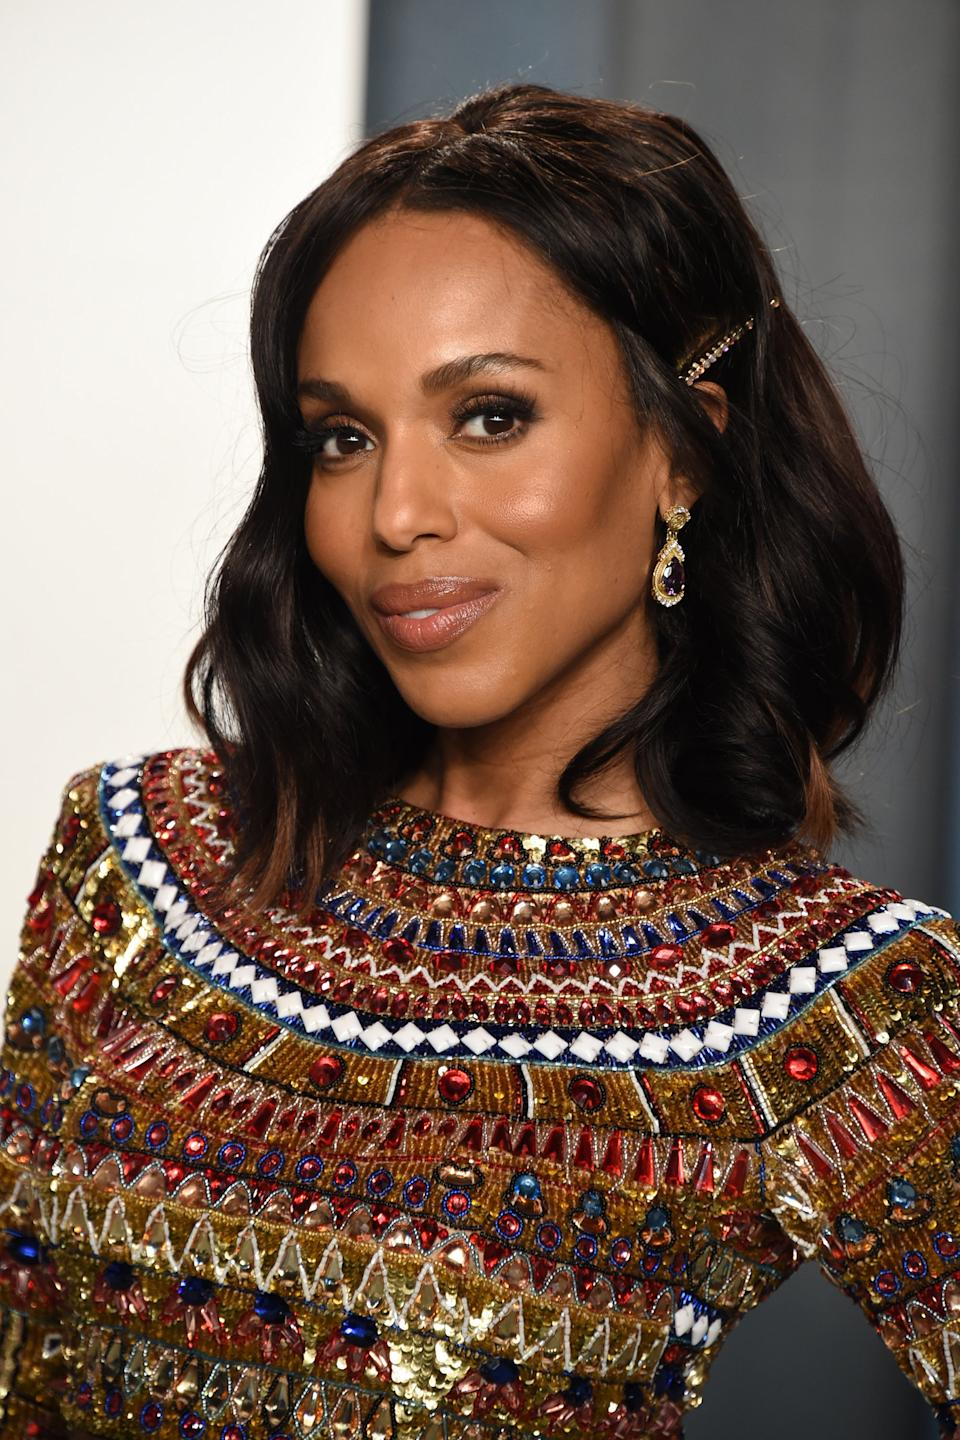 """Kerry Washington's longtime stylist Takisha Sturdivant-Drew gave her soft shoulder-length lob an (affordable!) Oscar-worthy upgrade by tucking a <a href=""""https://www.sephora.com/product/kitsch-3pc-bobby-pins-pearl-iridescent-rhinestone-P454041?icid2=products%20grid:p454041"""" rel=""""nofollow noopener"""" target=""""_blank"""" data-ylk=""""slk:beaded bobby pin from Kitsch"""" class=""""link rapid-noclick-resp"""">beaded bobby pin from Kitsch</a> above her ear. <span class=""""copyright"""">Photo: John Shearer/Getty Images.</span>"""